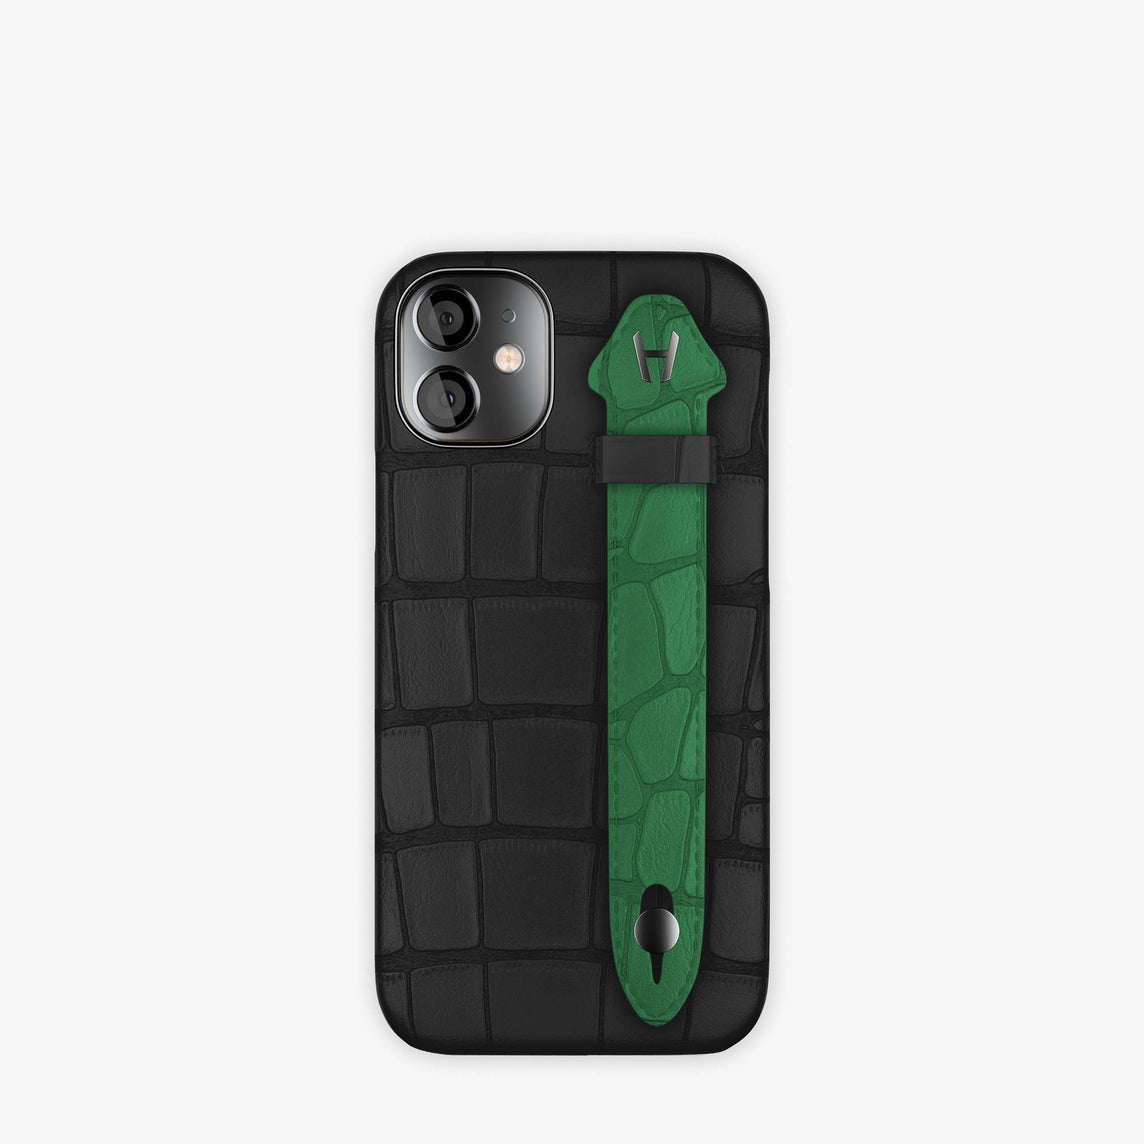 Alligator Side Finger Case iPhone 12 Mini | Black/Green Emerald -Black